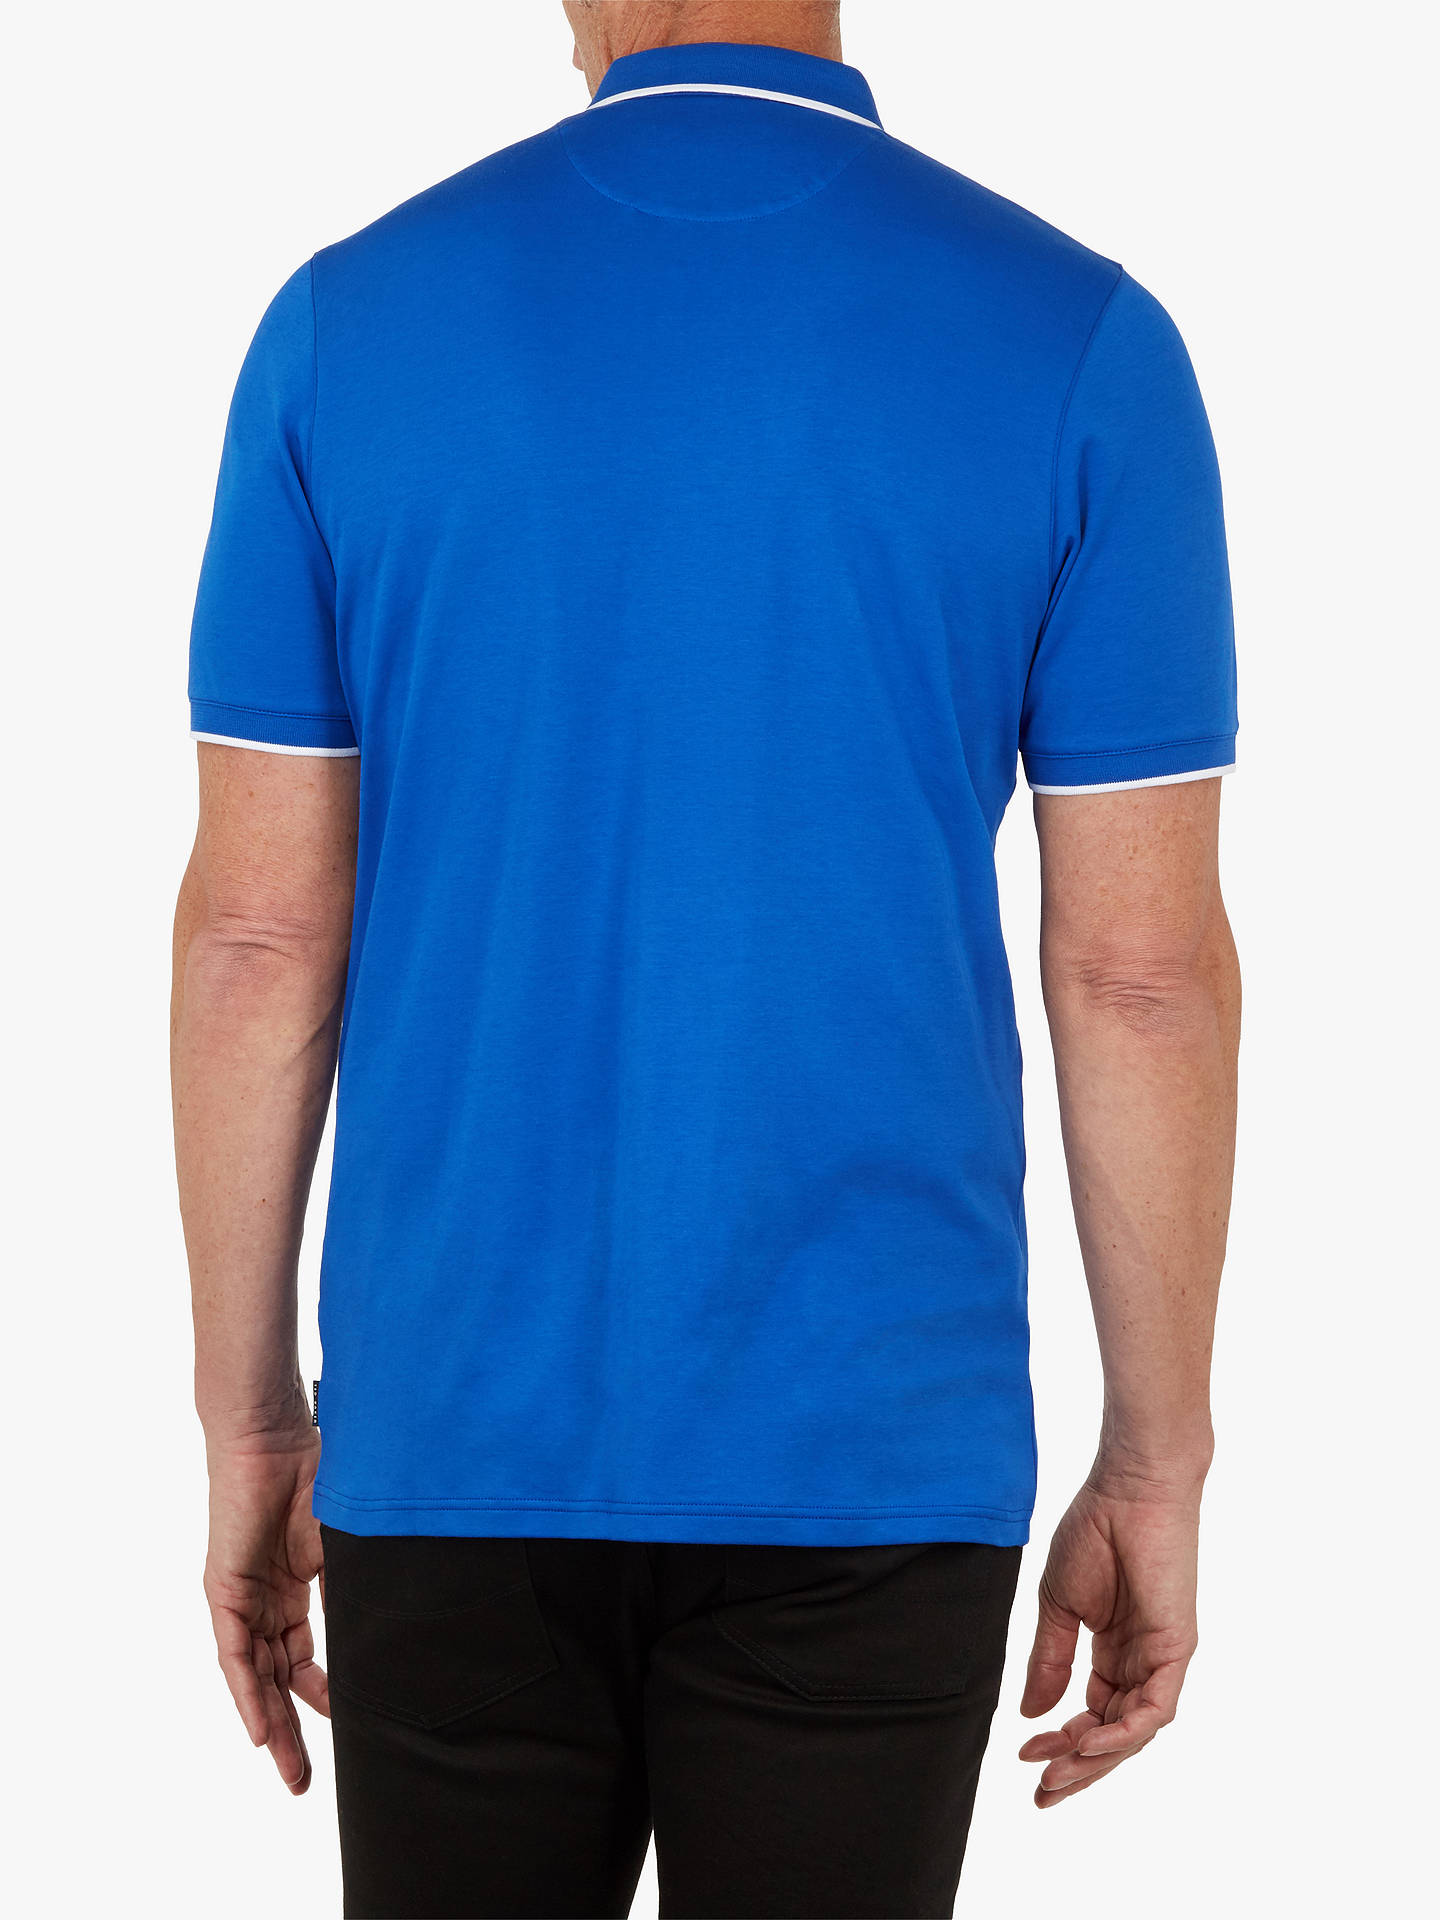 BuyTed Baker T for Tall jellytt Short Sleeve Polo Shirt, Bright Blue, XL Online at johnlewis.com